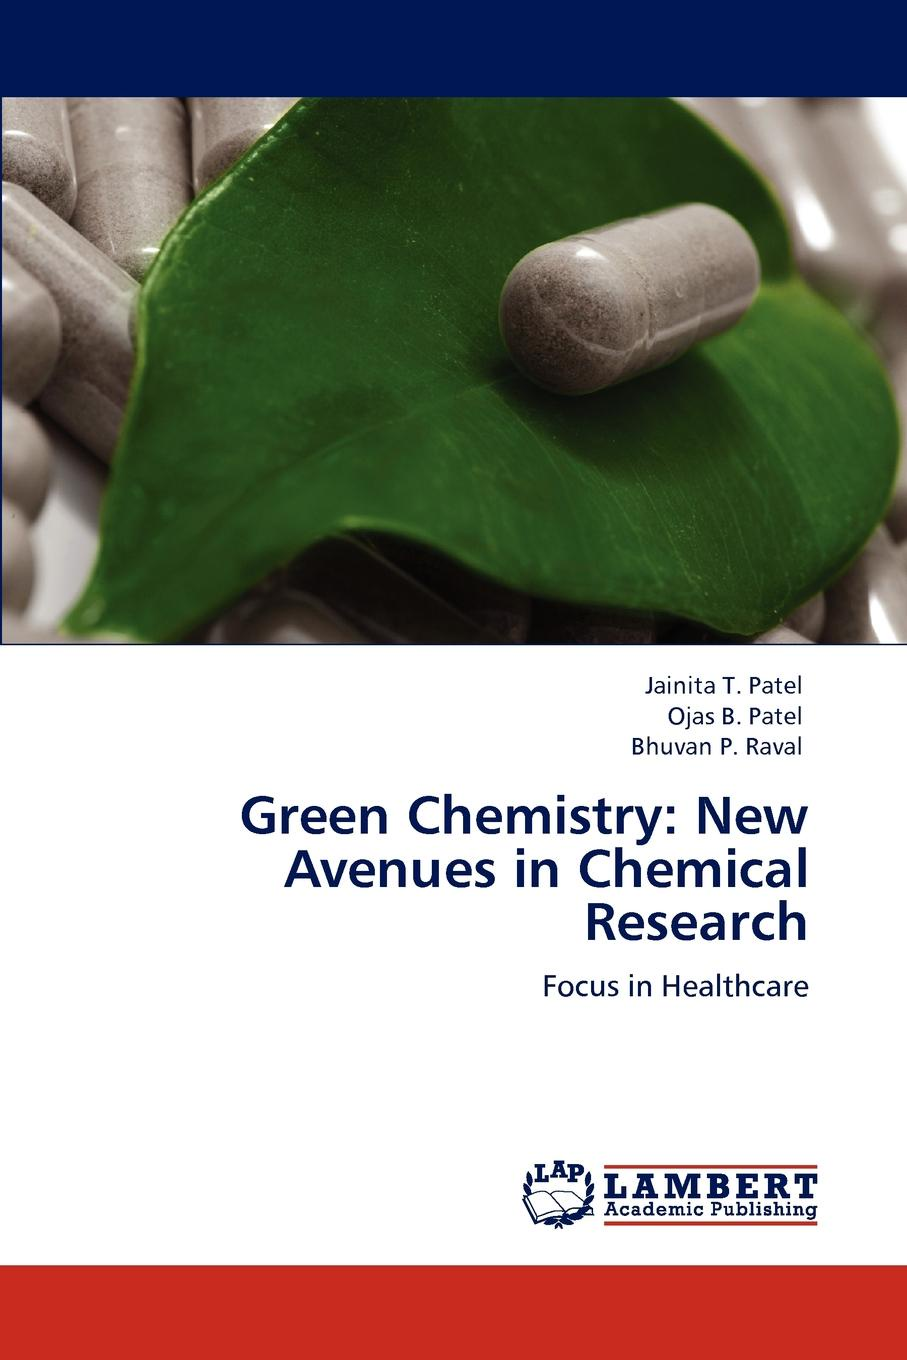 купить Jainita T. Patel, Ojas B. Patel, Bhuvan P. Raval Green Chemistry. New Avenues in Chemical Research по цене 8364 рублей